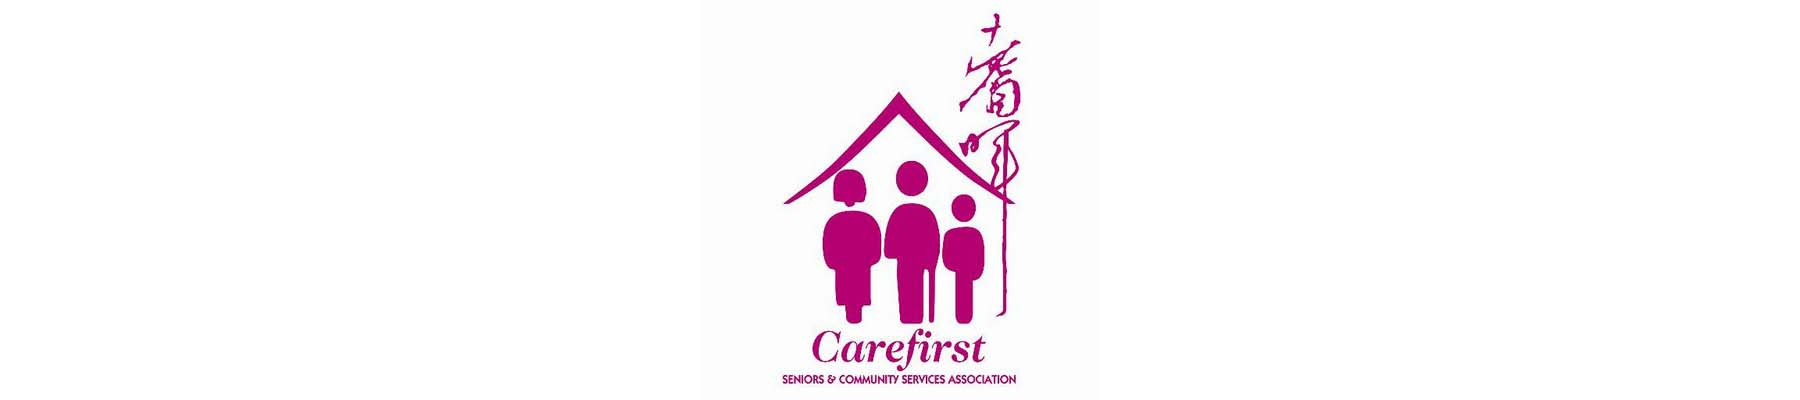 Carefirst Seniors & Community Services Association logo